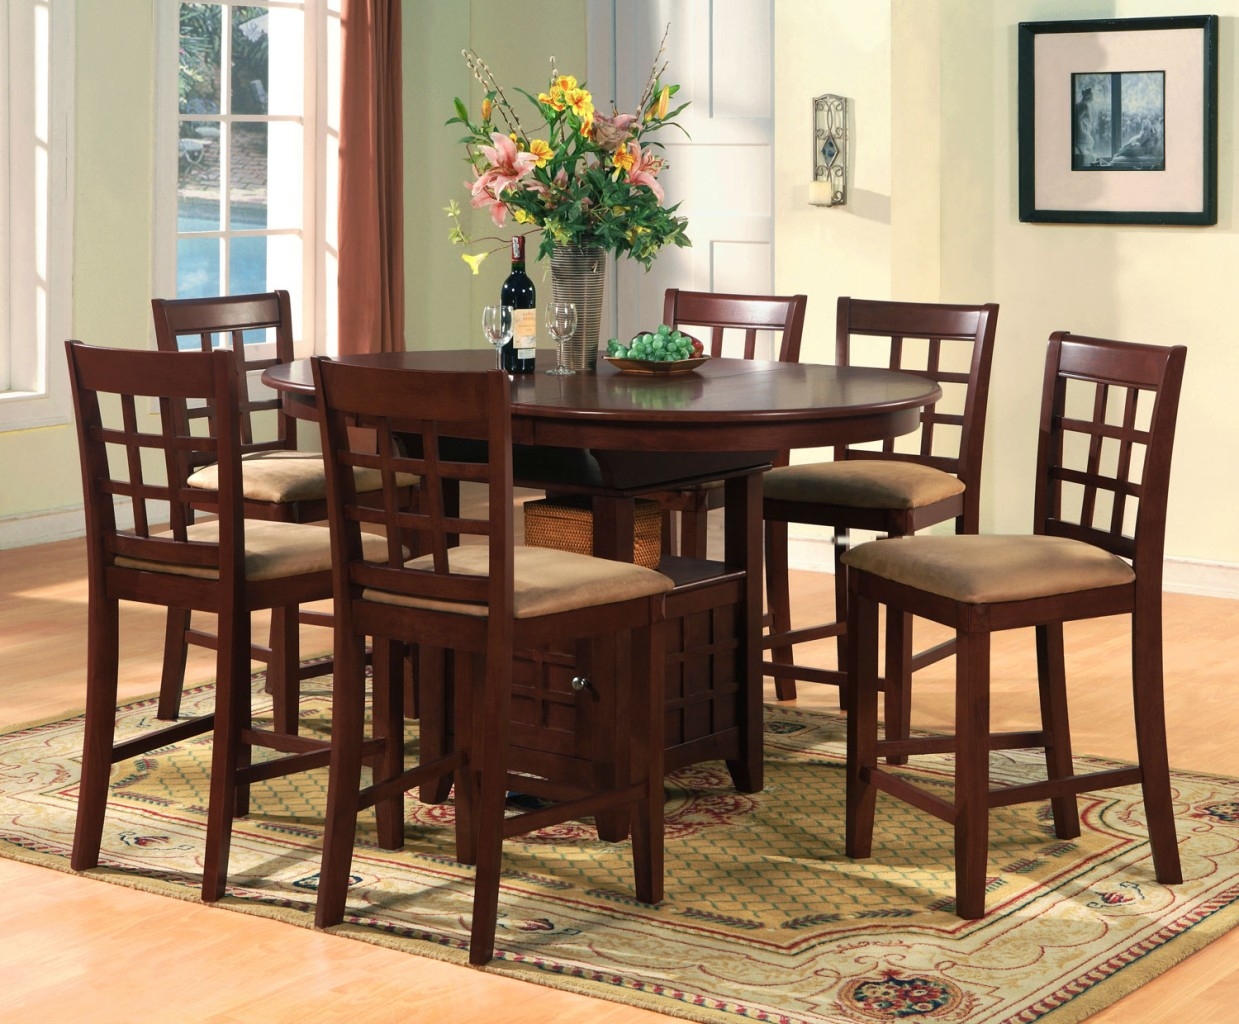 Magnificent Bar Height Dining Table Set 1239 x 1024 · 288 kB · jpeg